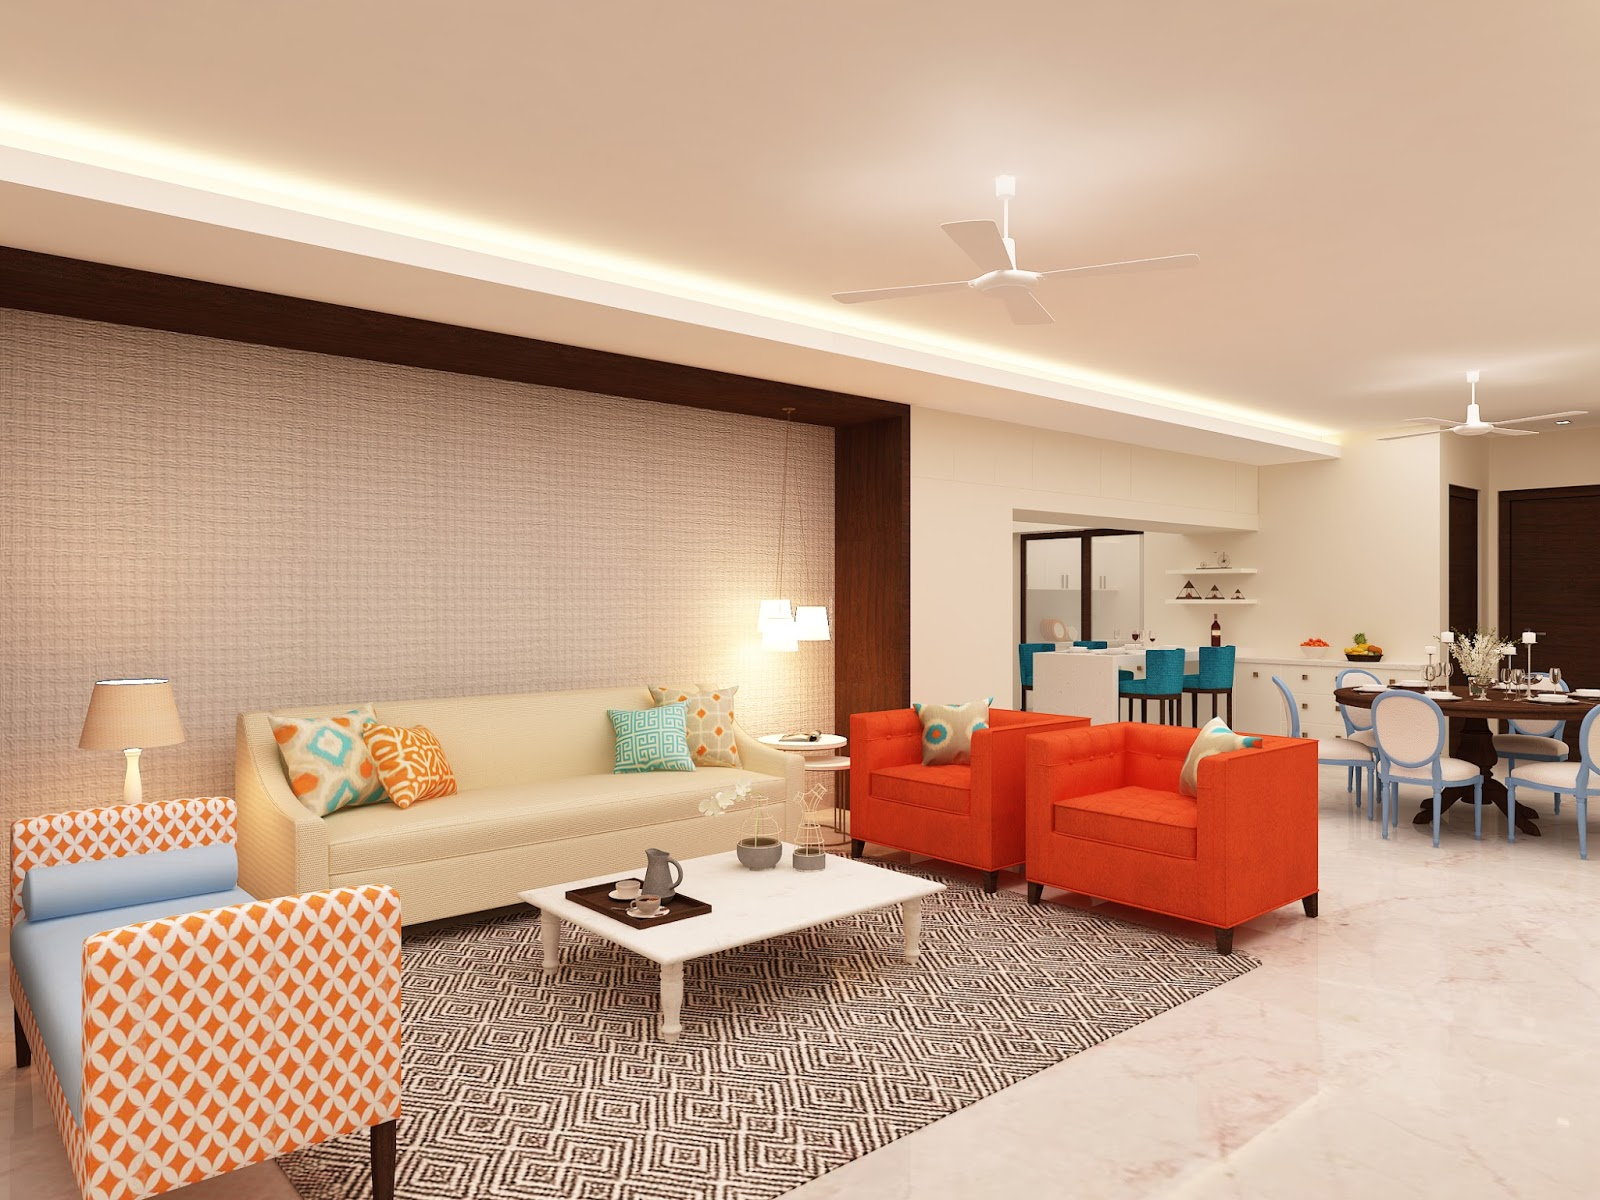 Get online interior designer services in bangalore for Interior designs services